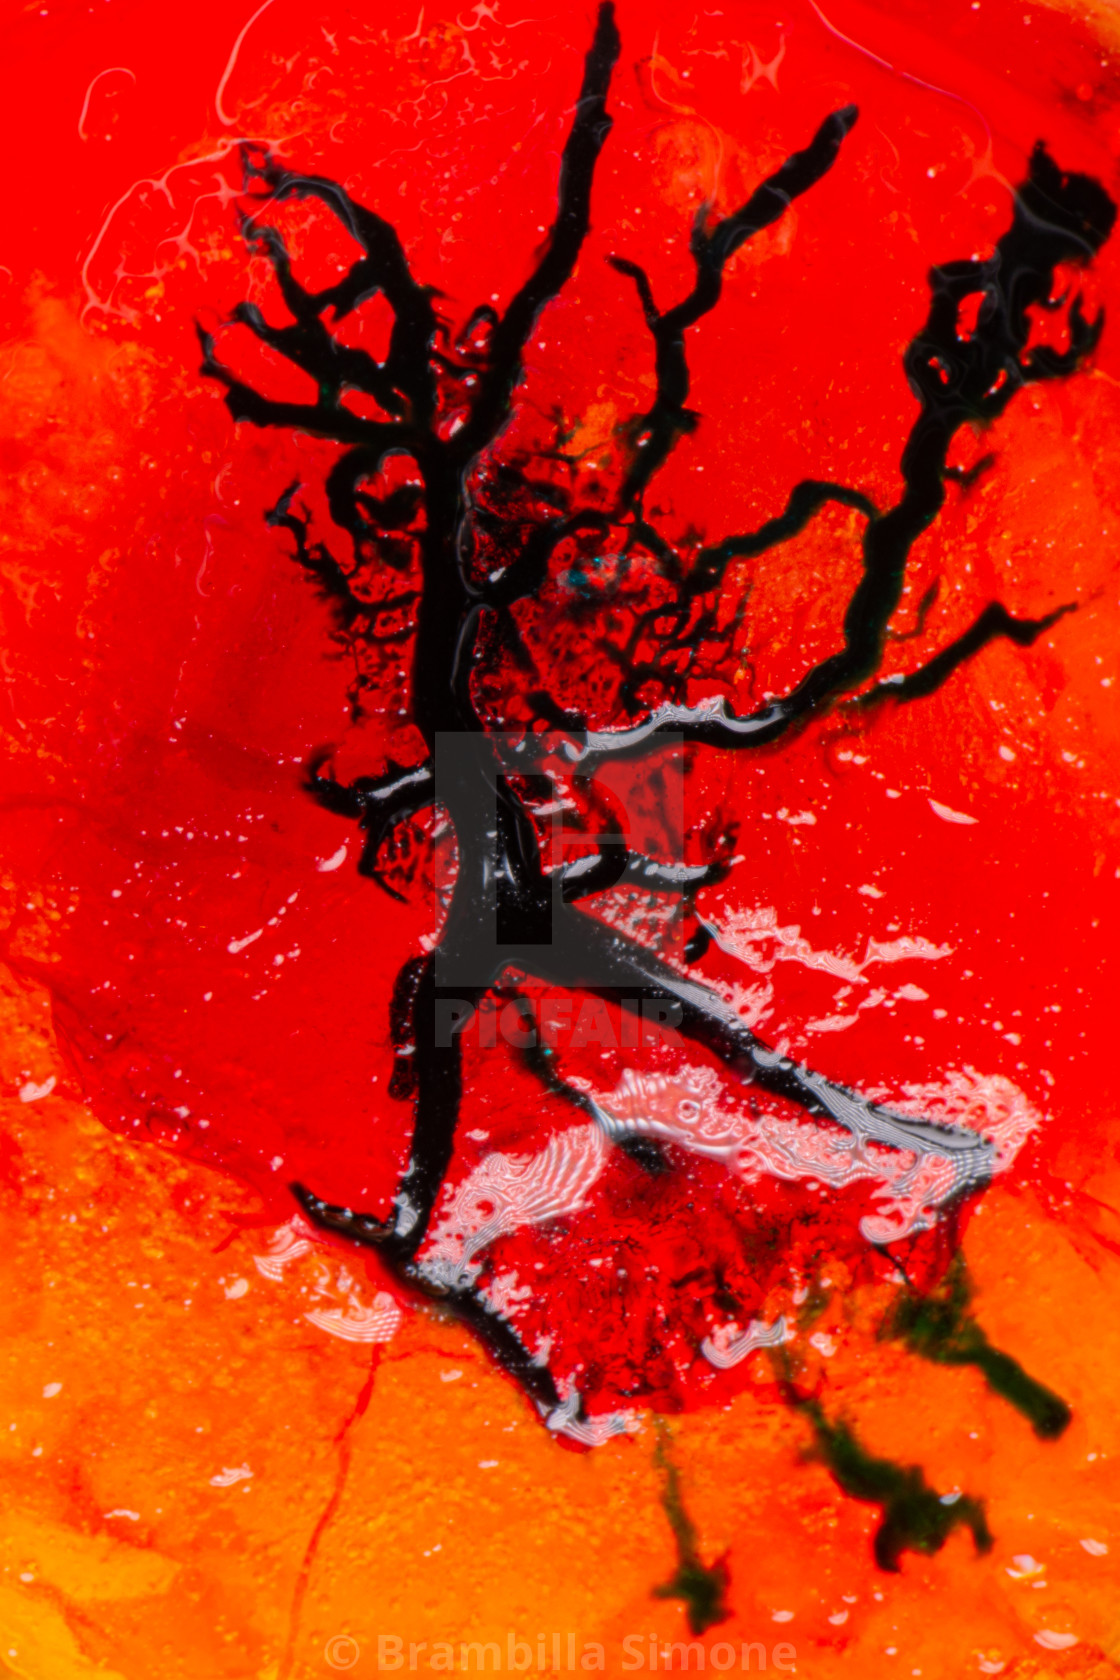 Image of blood-colored liquids mixed with other organic fluids